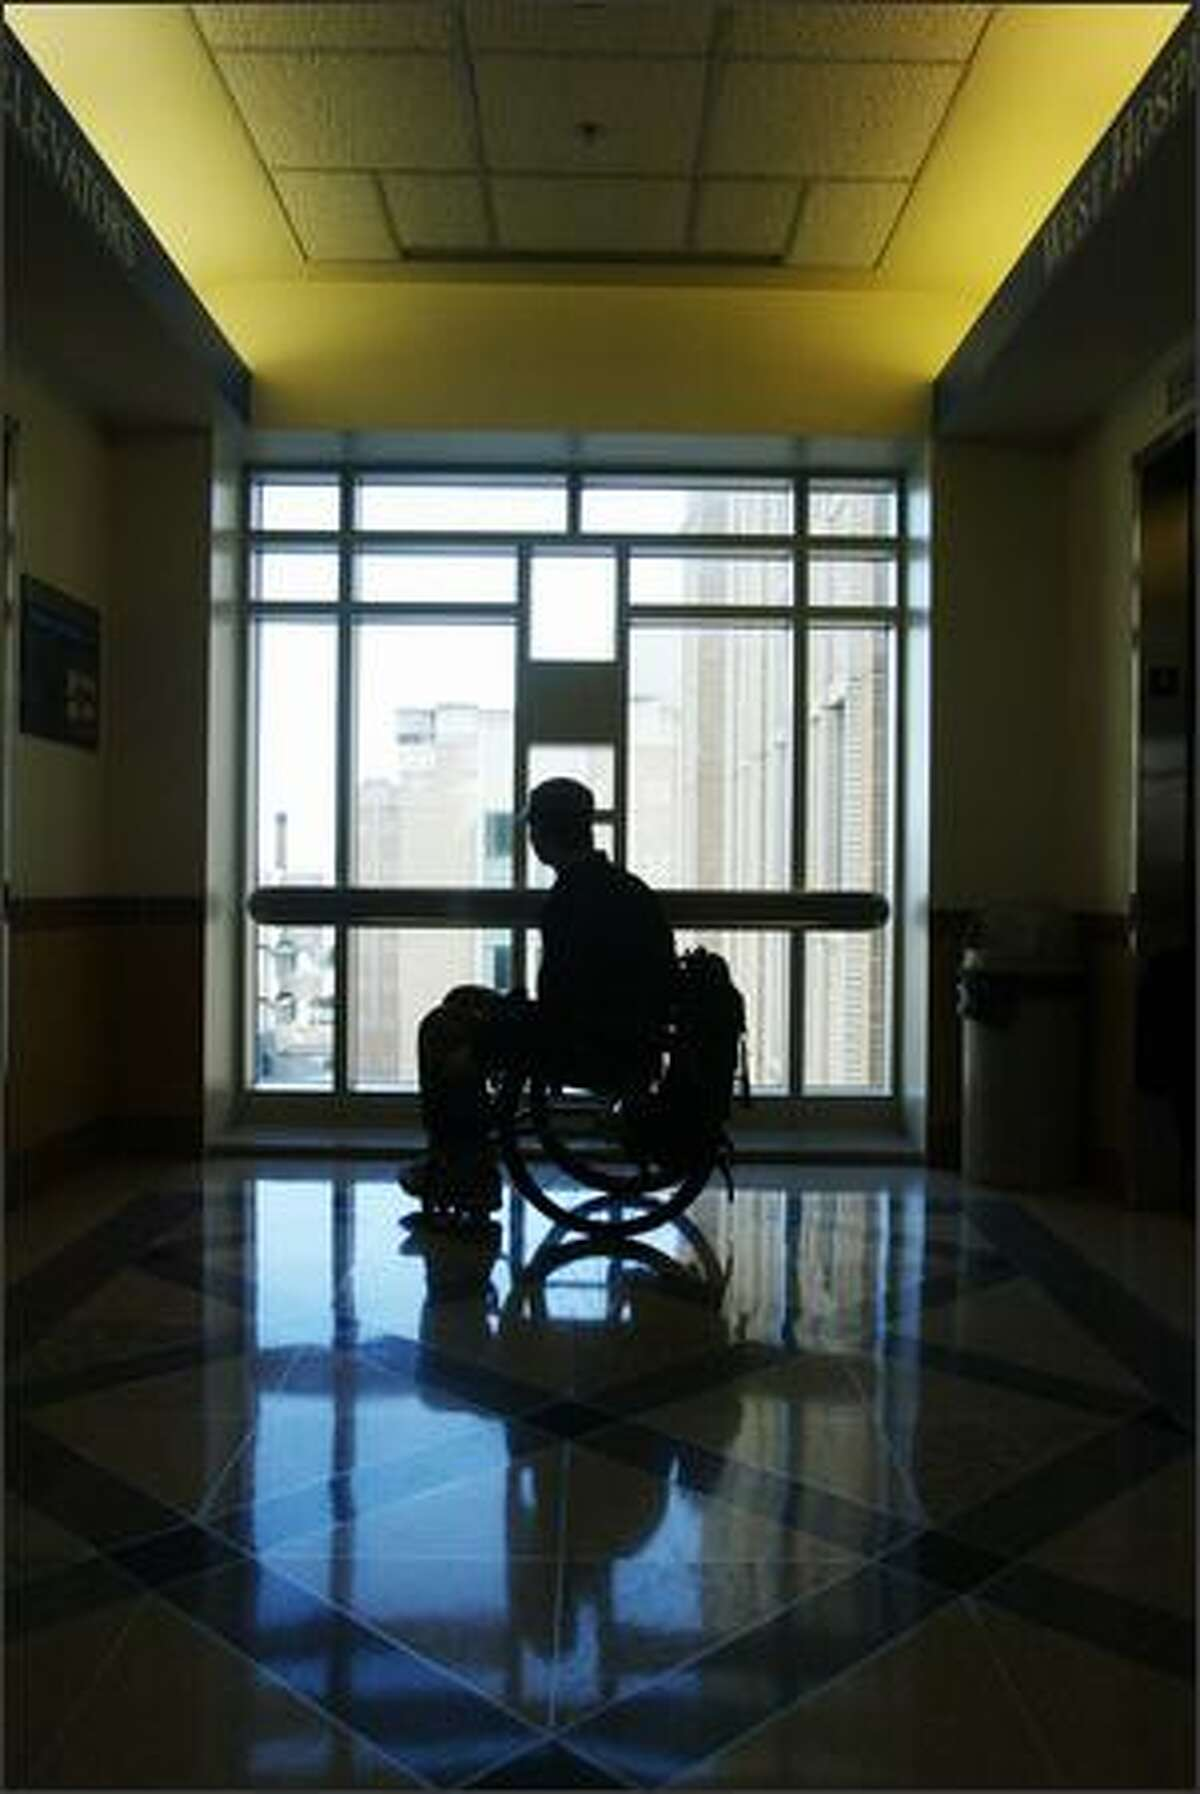 Brian Chaffin, 25, who broke his back three years ago and spent months at Harborview, pauses in a hallway. During his recovery, natural light and skyscapes were solace for Chaffin; his photo is at top.